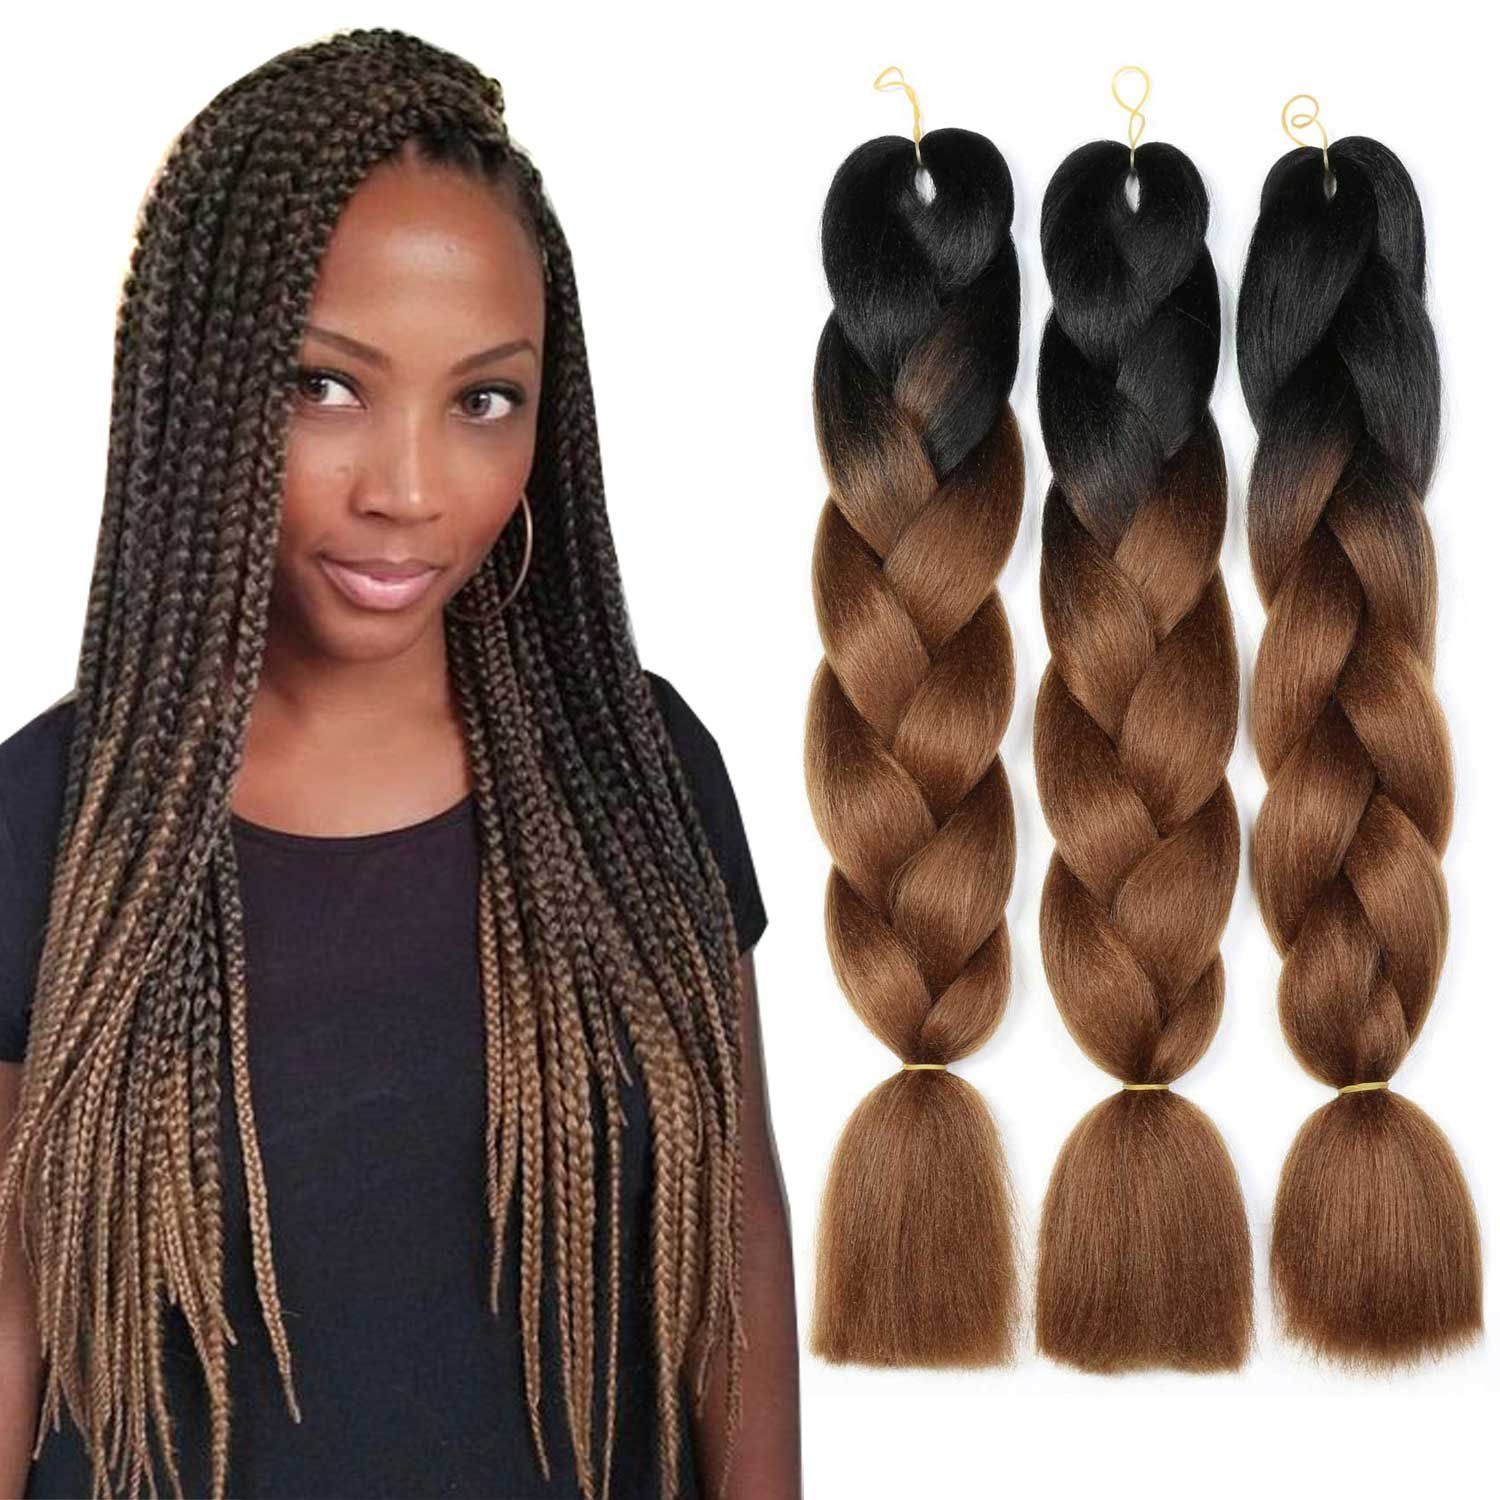 Weave Master Ombre Synthetic Braiding Hair Kanekalon 24 Inch Two